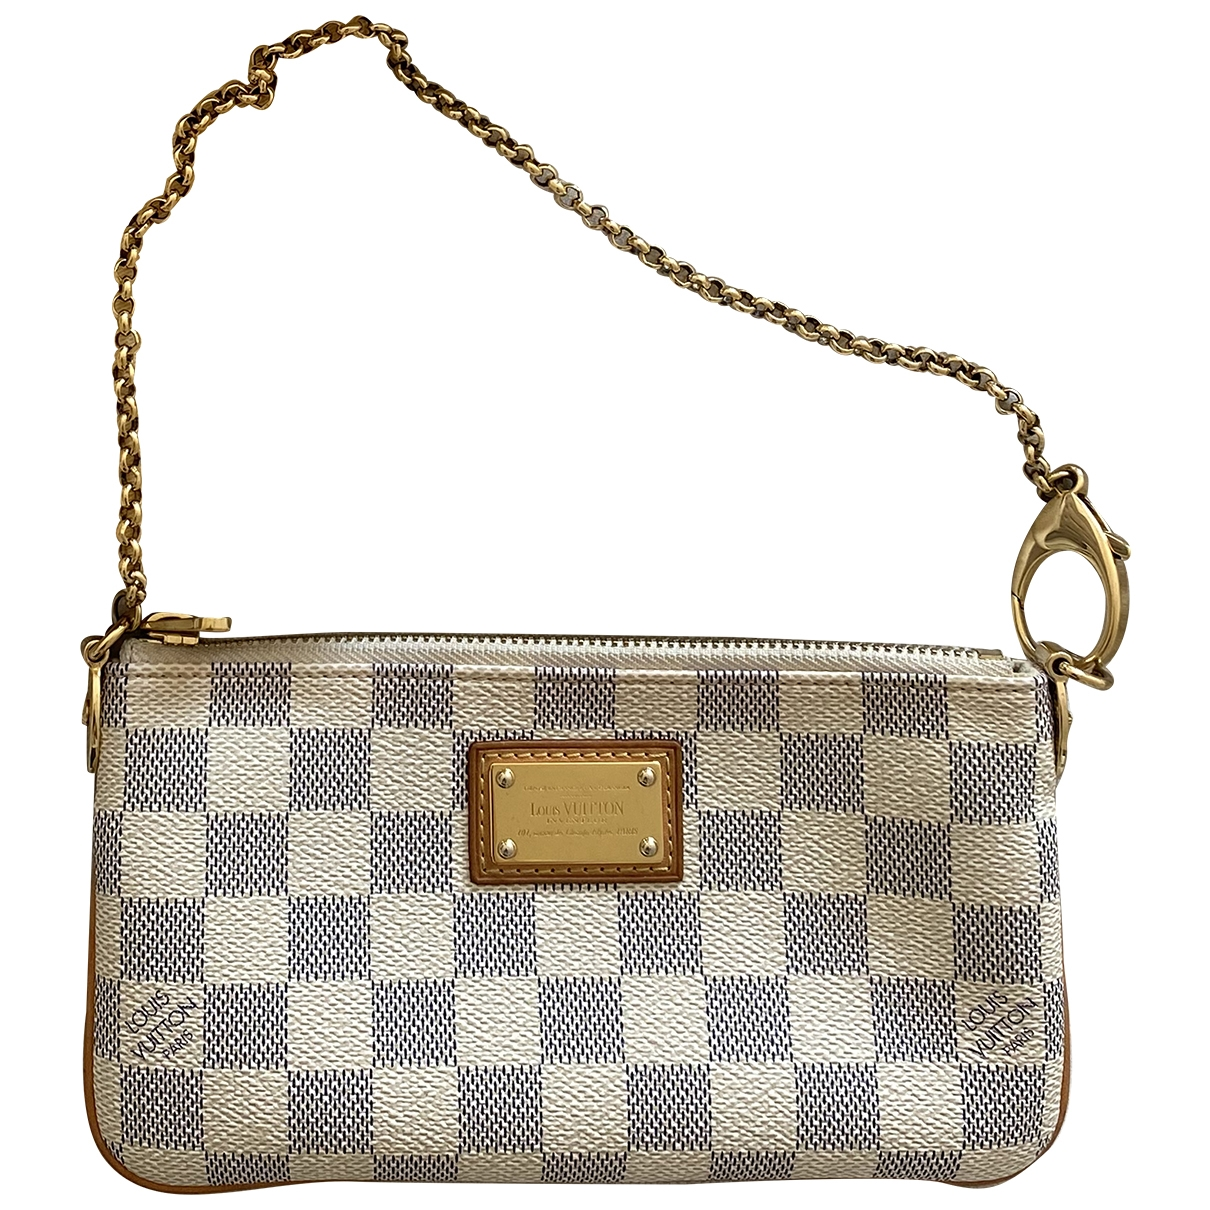 Louis Vuitton Milla Handtasche in  Bunt Leinen